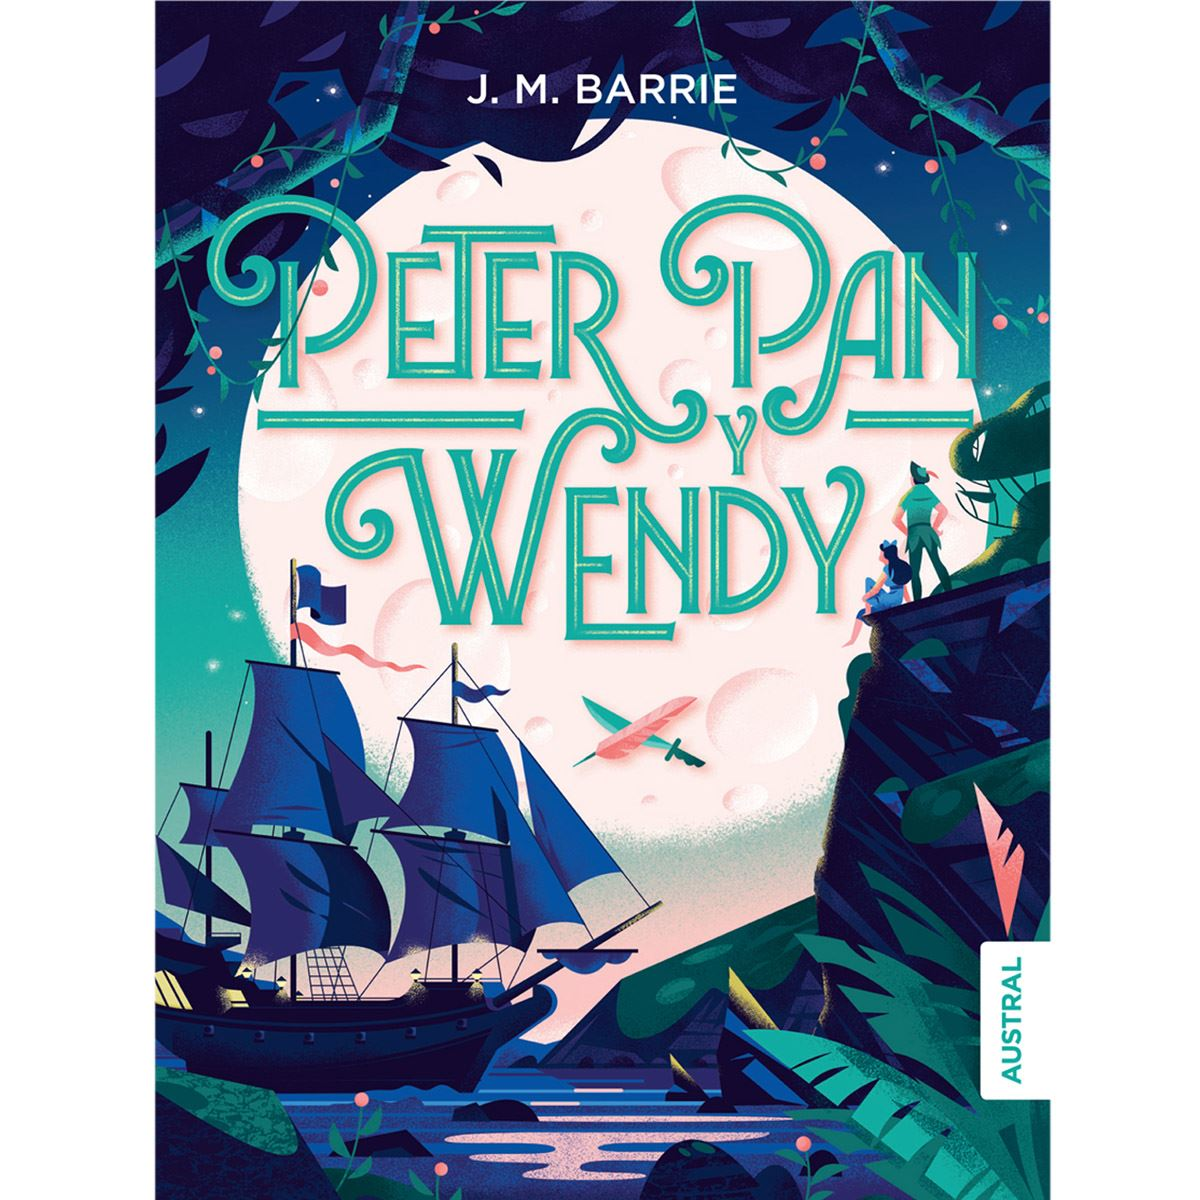 Peter pan y wendy Libro - Sanborns